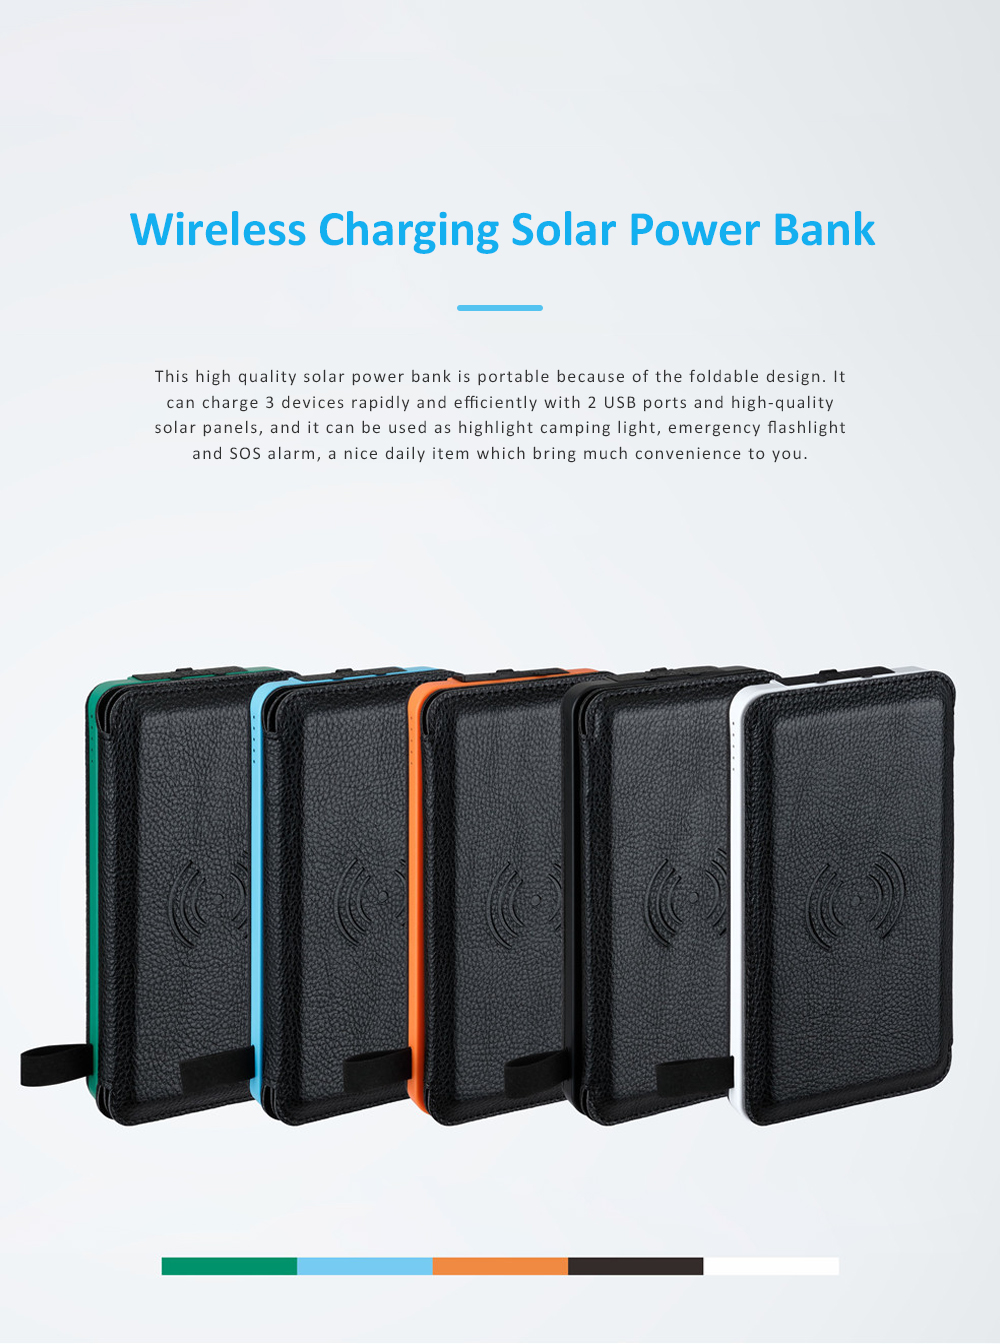 Wireless Charging Solar Charger Foldable Double USB Port Solar Power Bank with Flashlight and Compatible with Many Electronic Devices 0